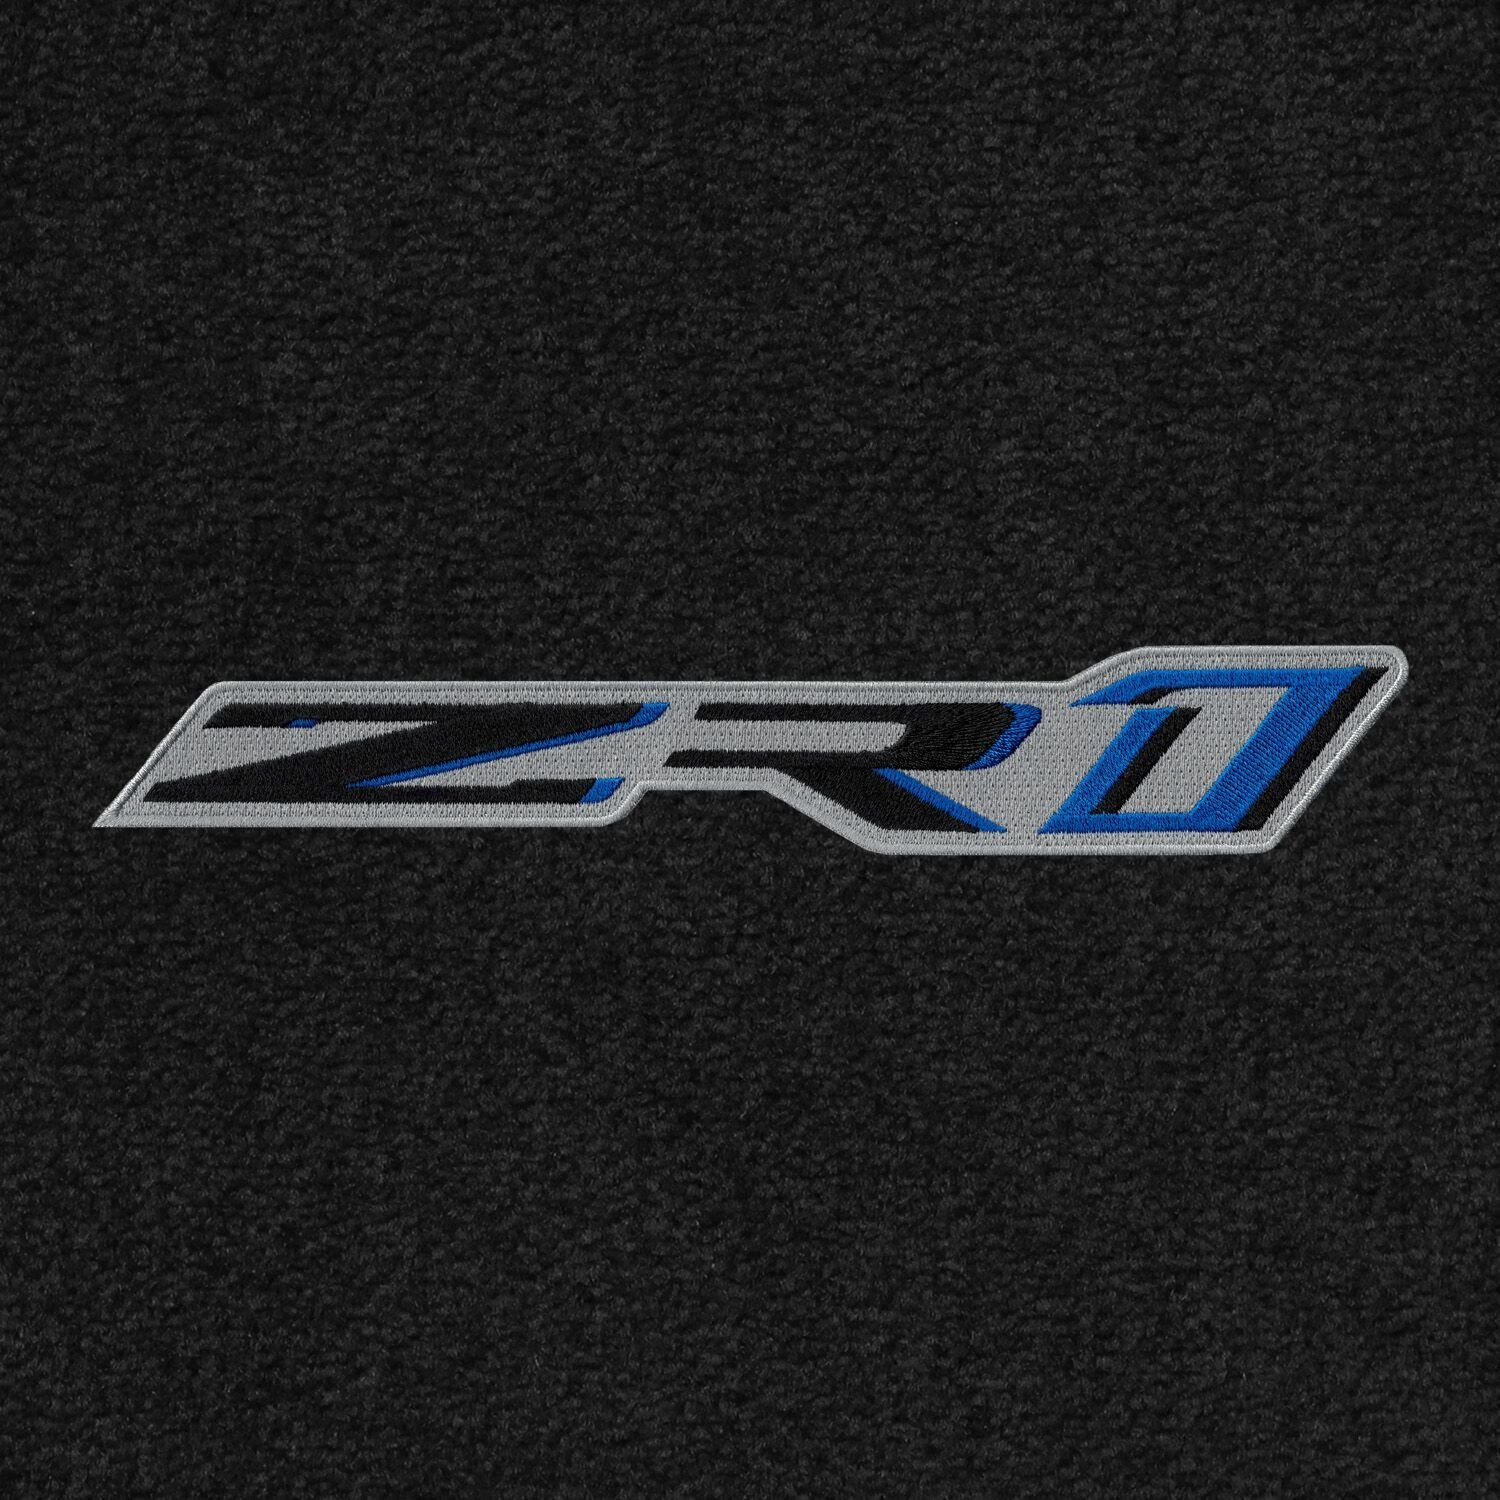 C7 Corvette Zr1 Lloyd Embroidered Floor Mats